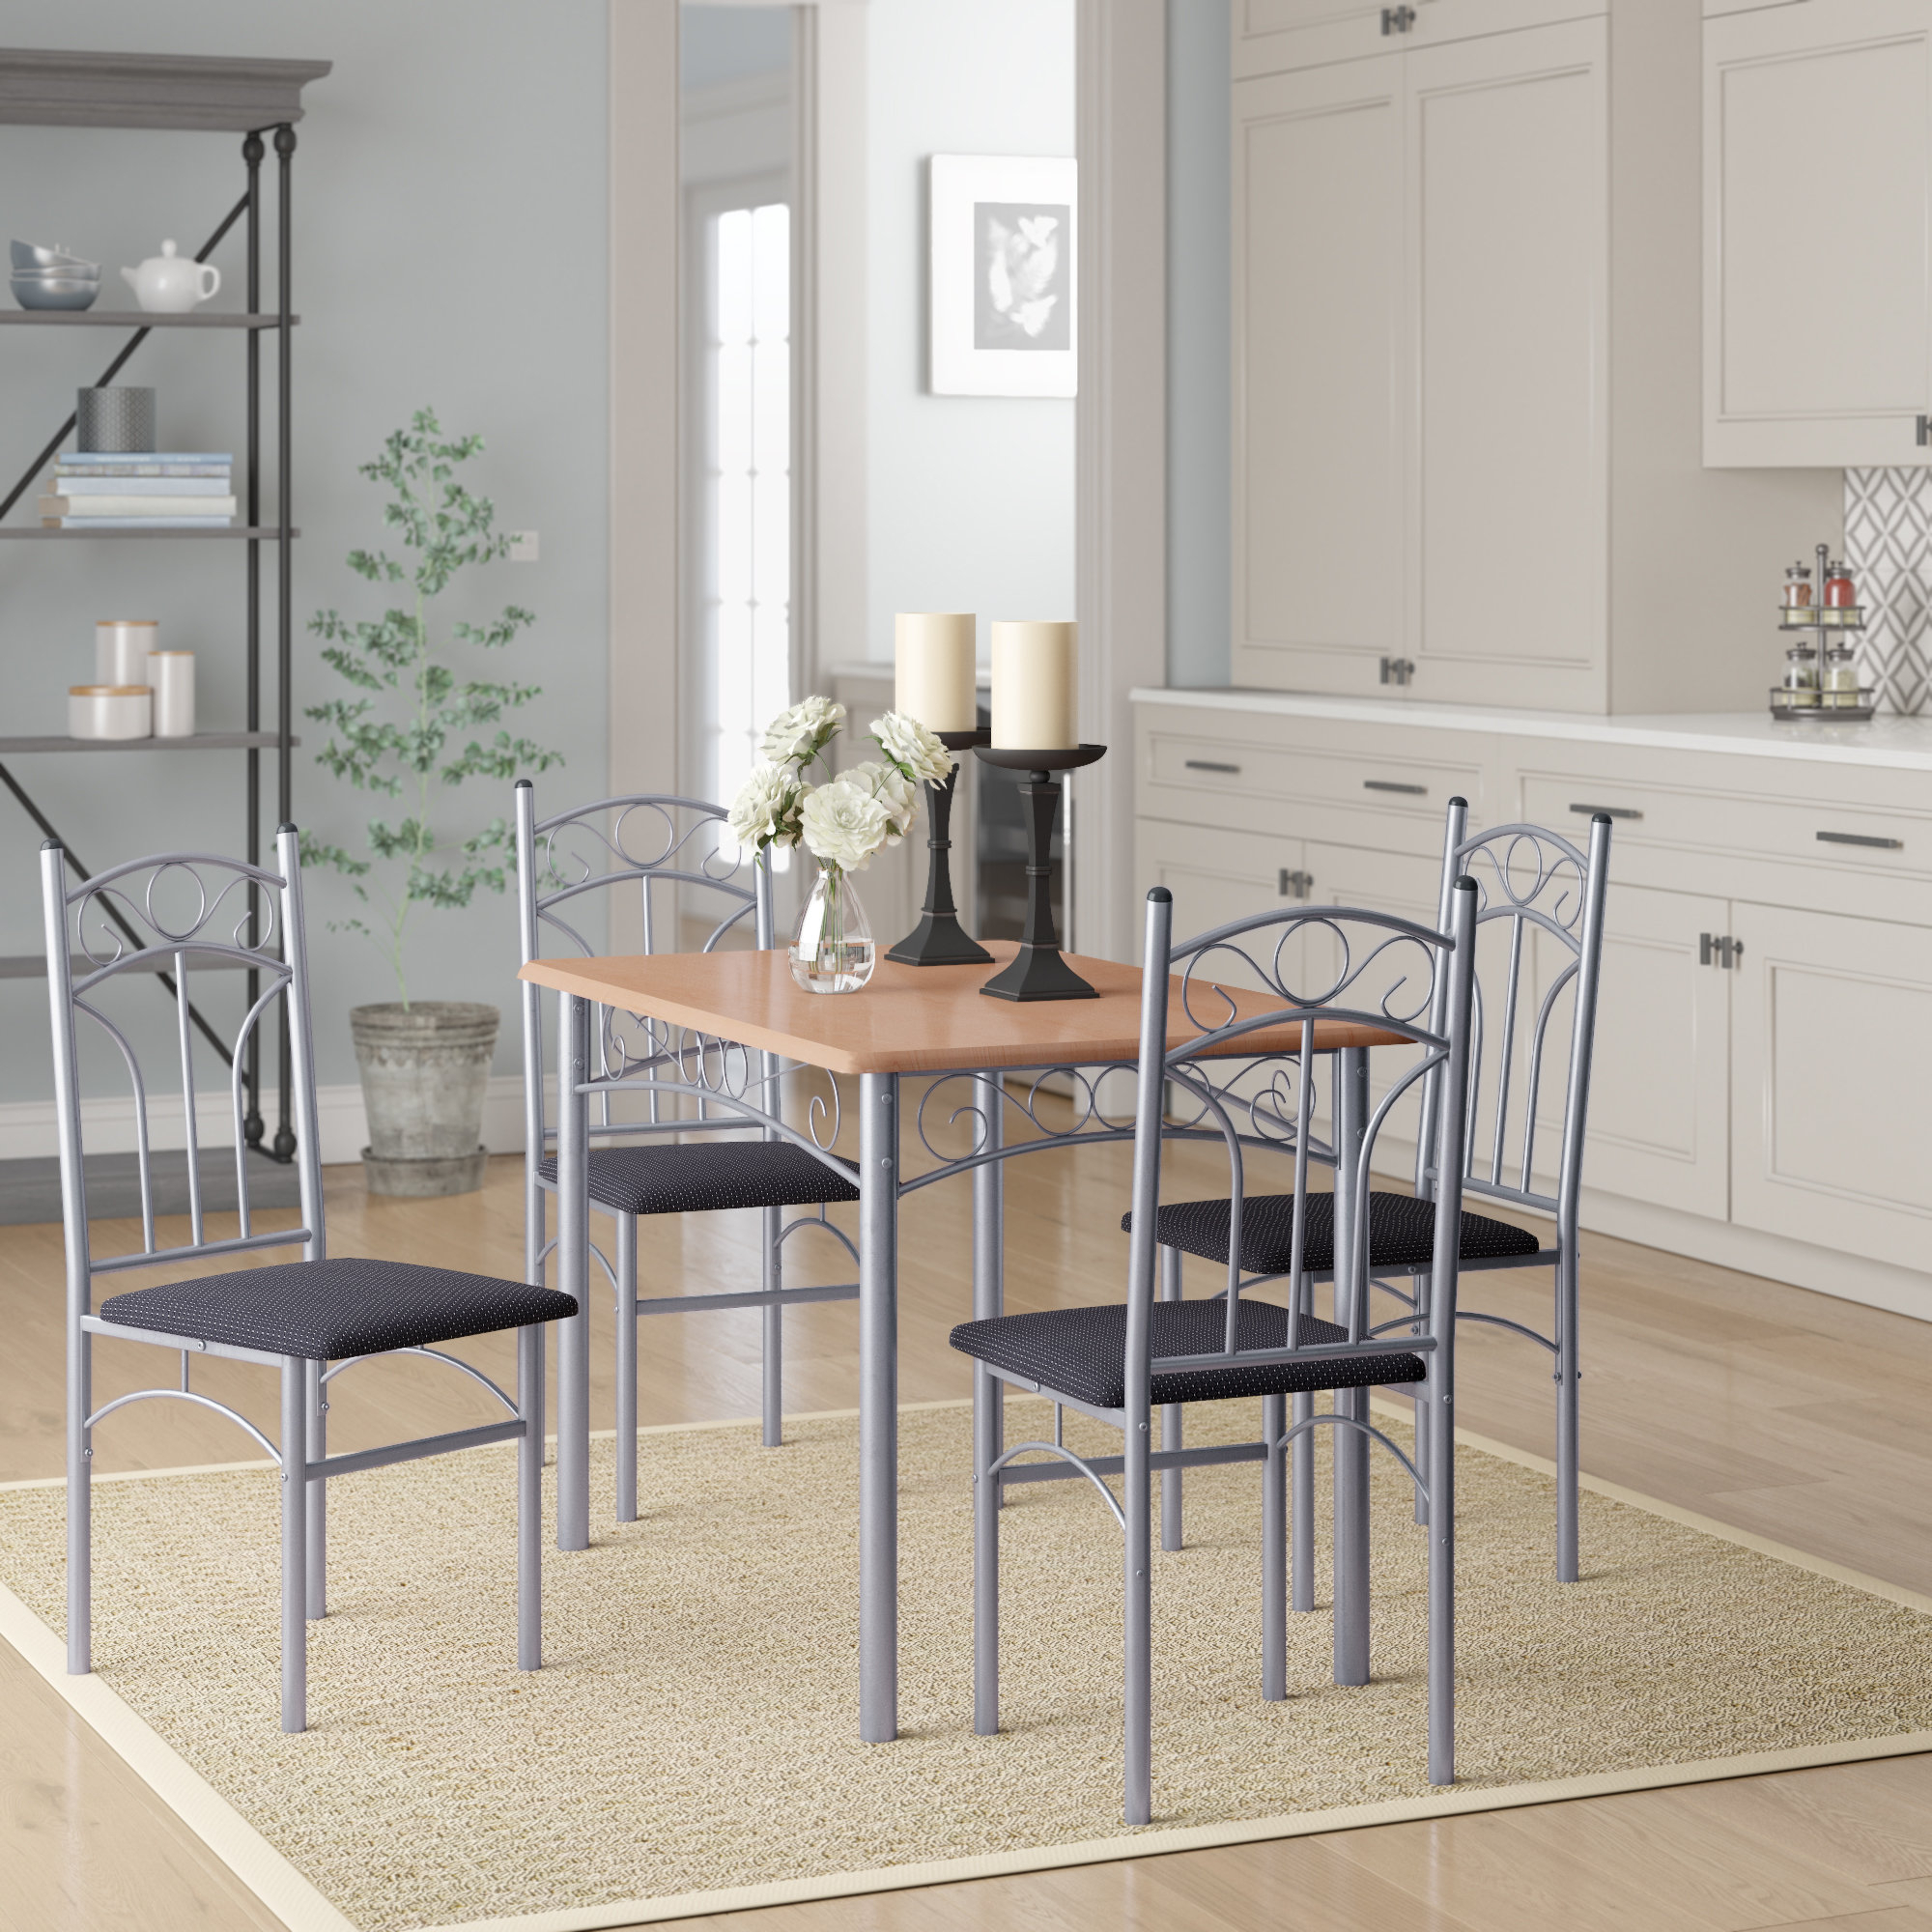 Wayfair Pertaining To Most Current Conover 5 Piece Dining Sets (View 18 of 25)